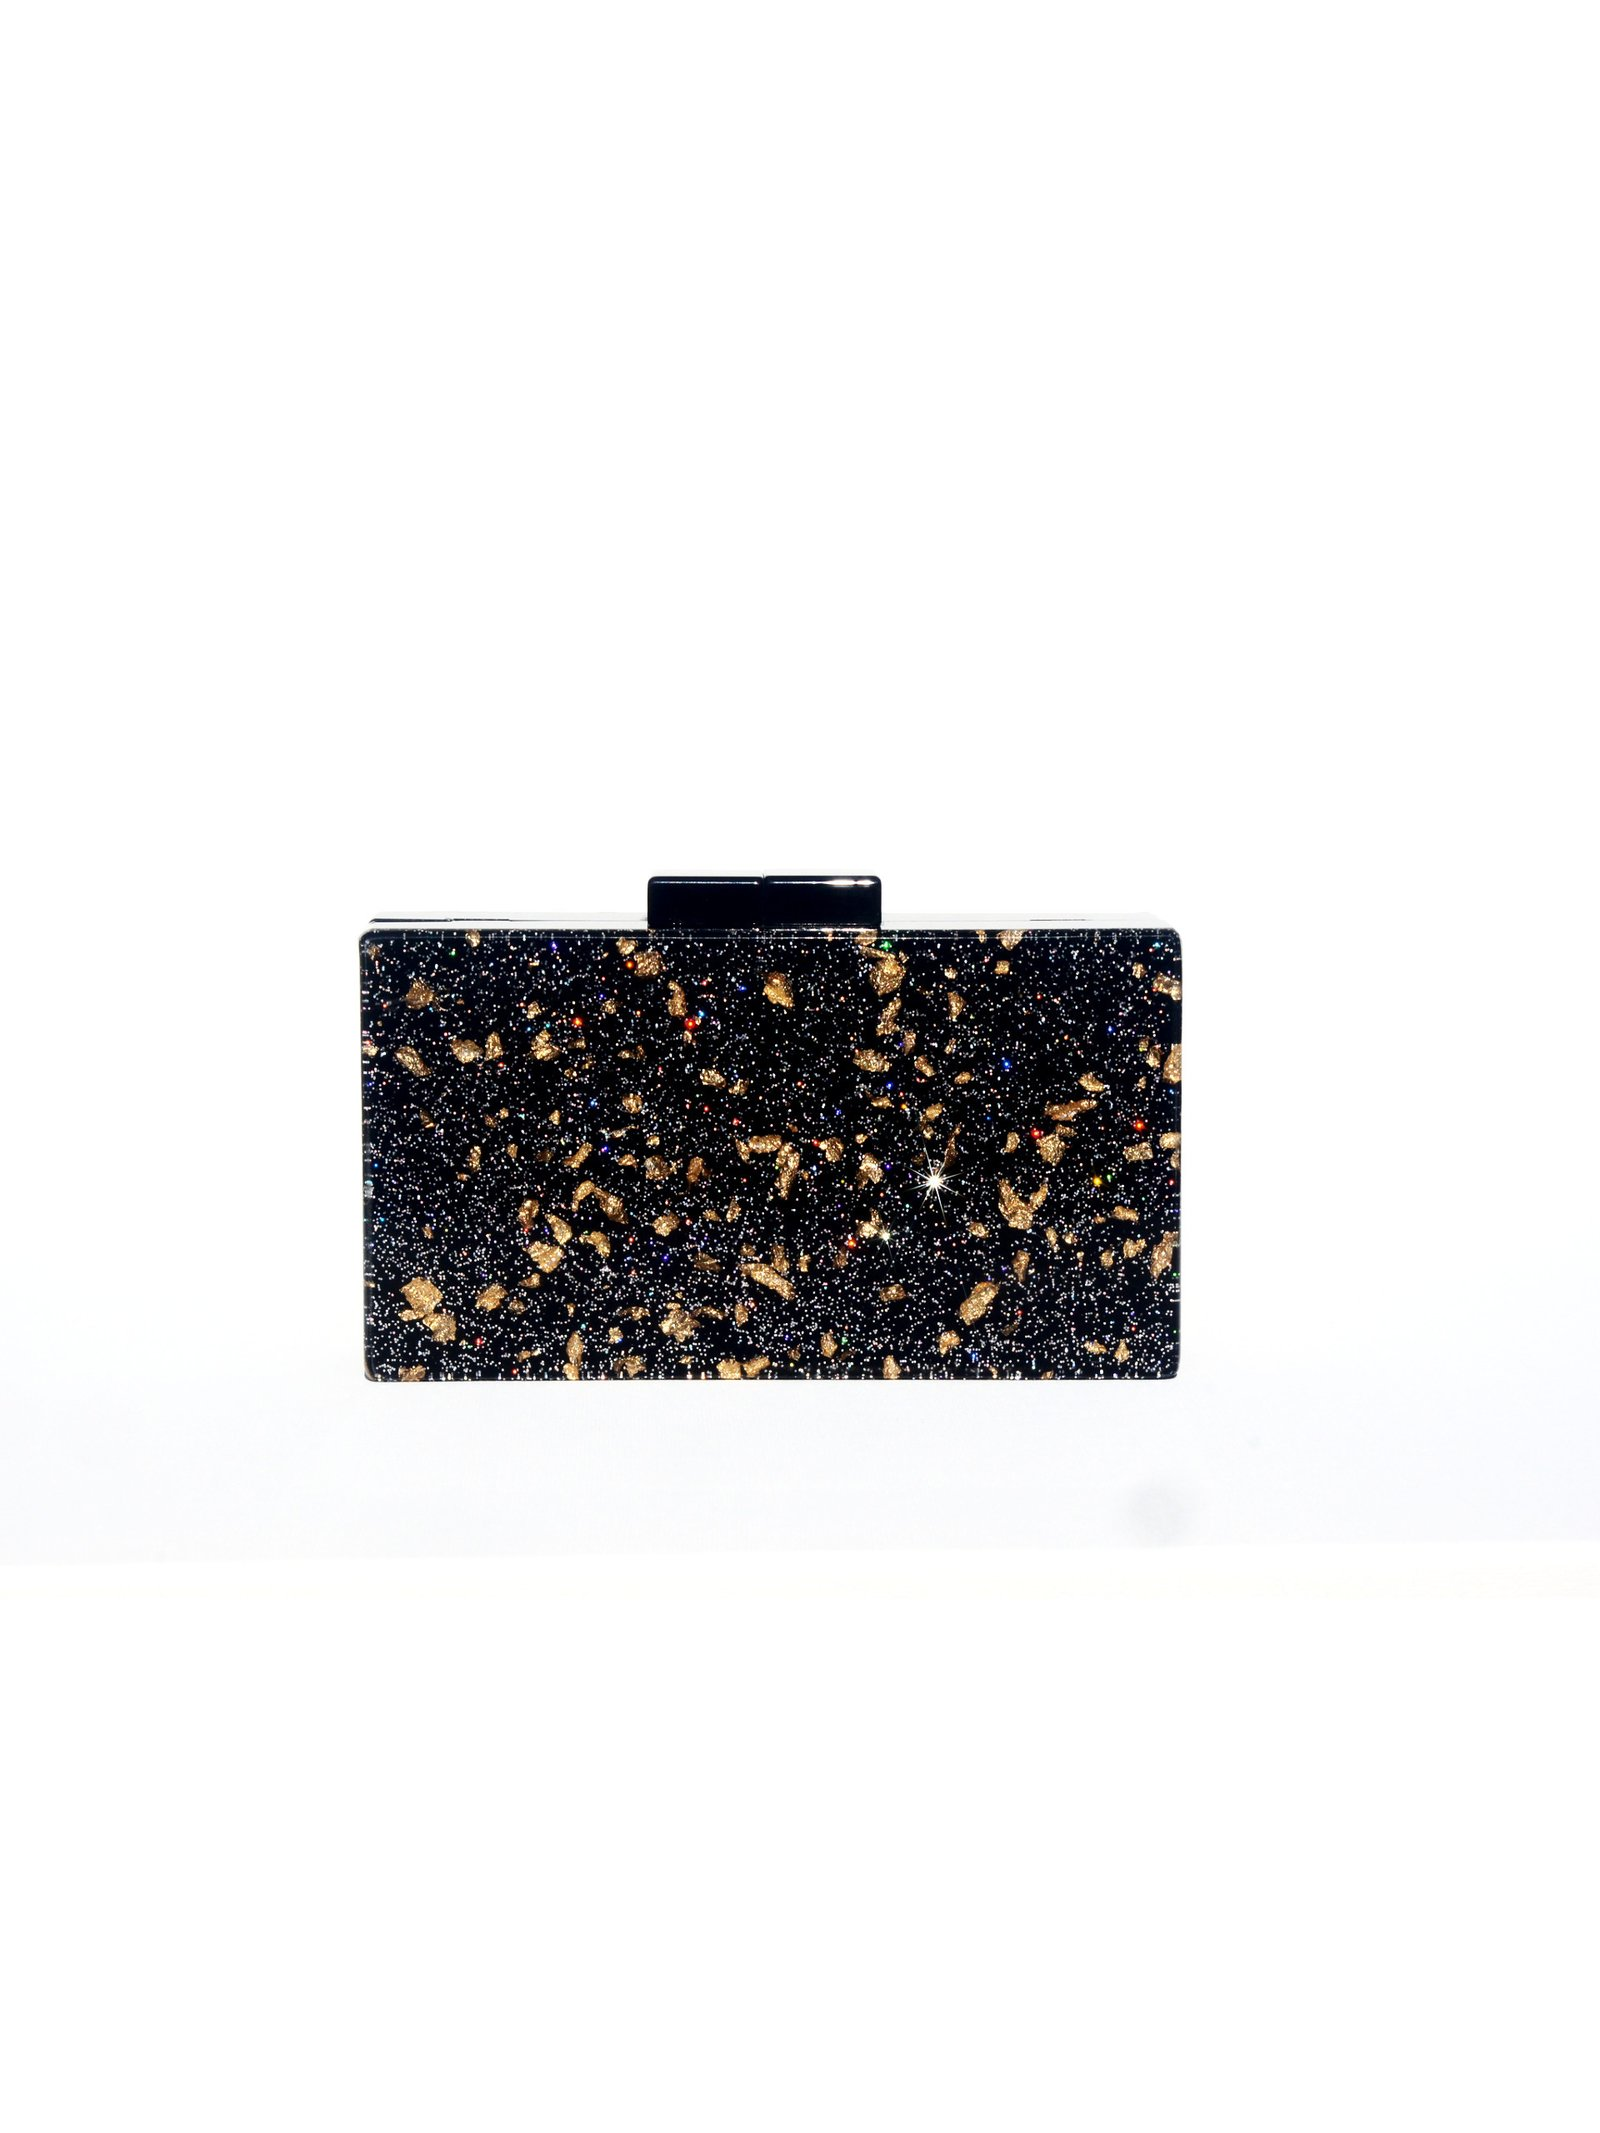 Milanblocks Black Glitter Acrylic Box Clutch